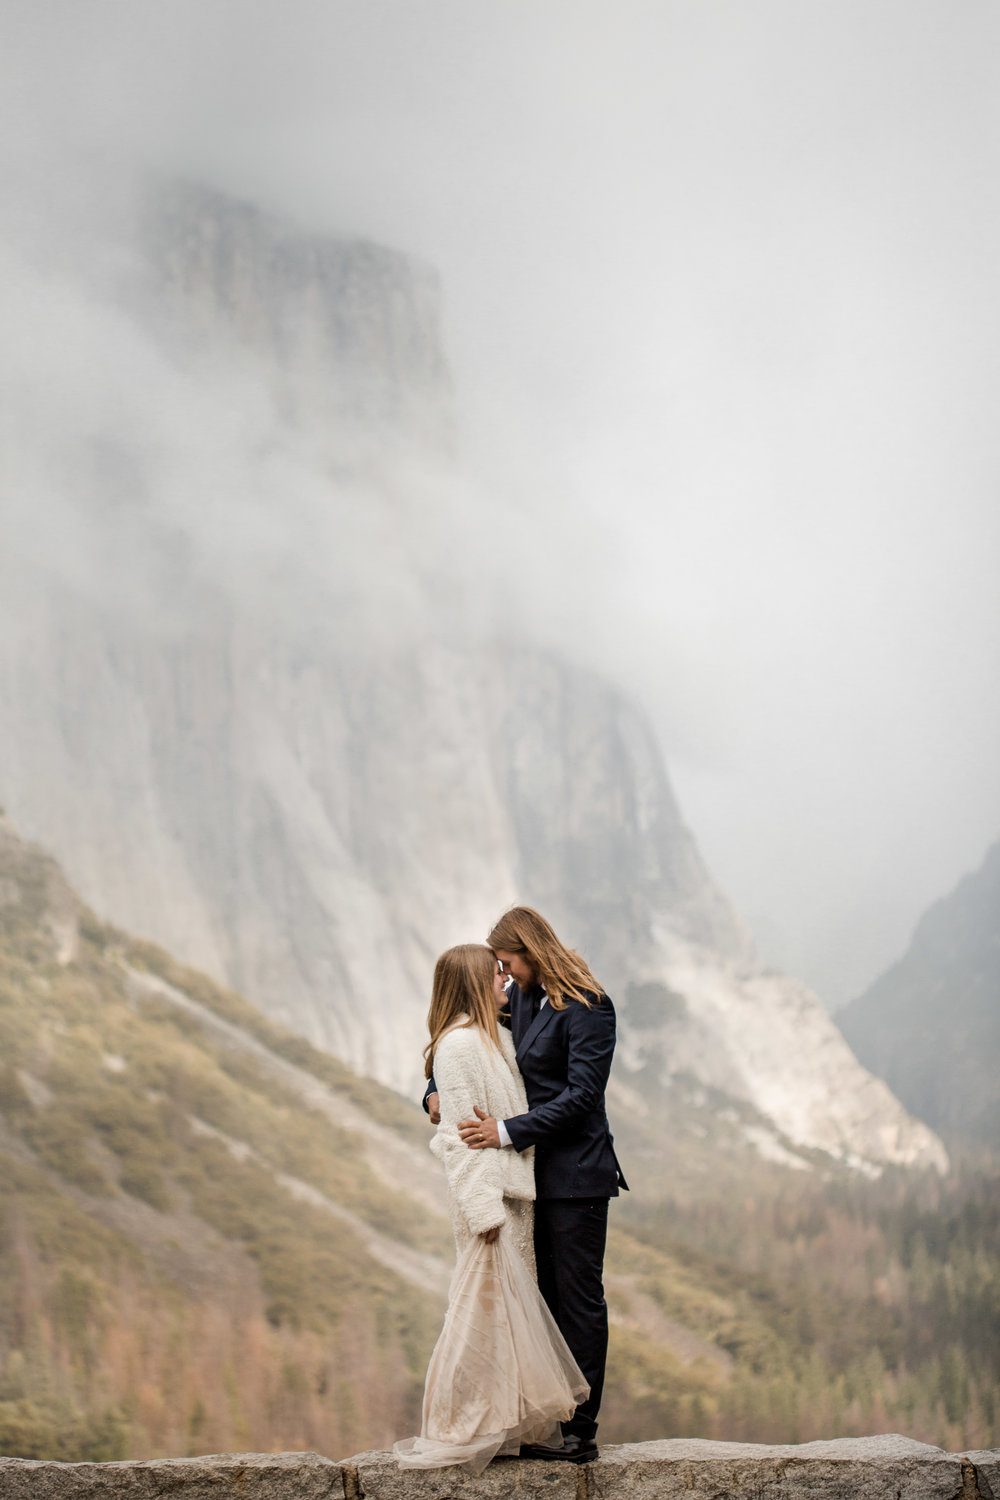 nicole-daacke-photography-yousemite-national-park-elopement-photographer-winter-cloud-moody-elope-inspiration-yosemite-valley-tunnel-view-winter-cloud-fog-weather-wedding-photos-6.jpg